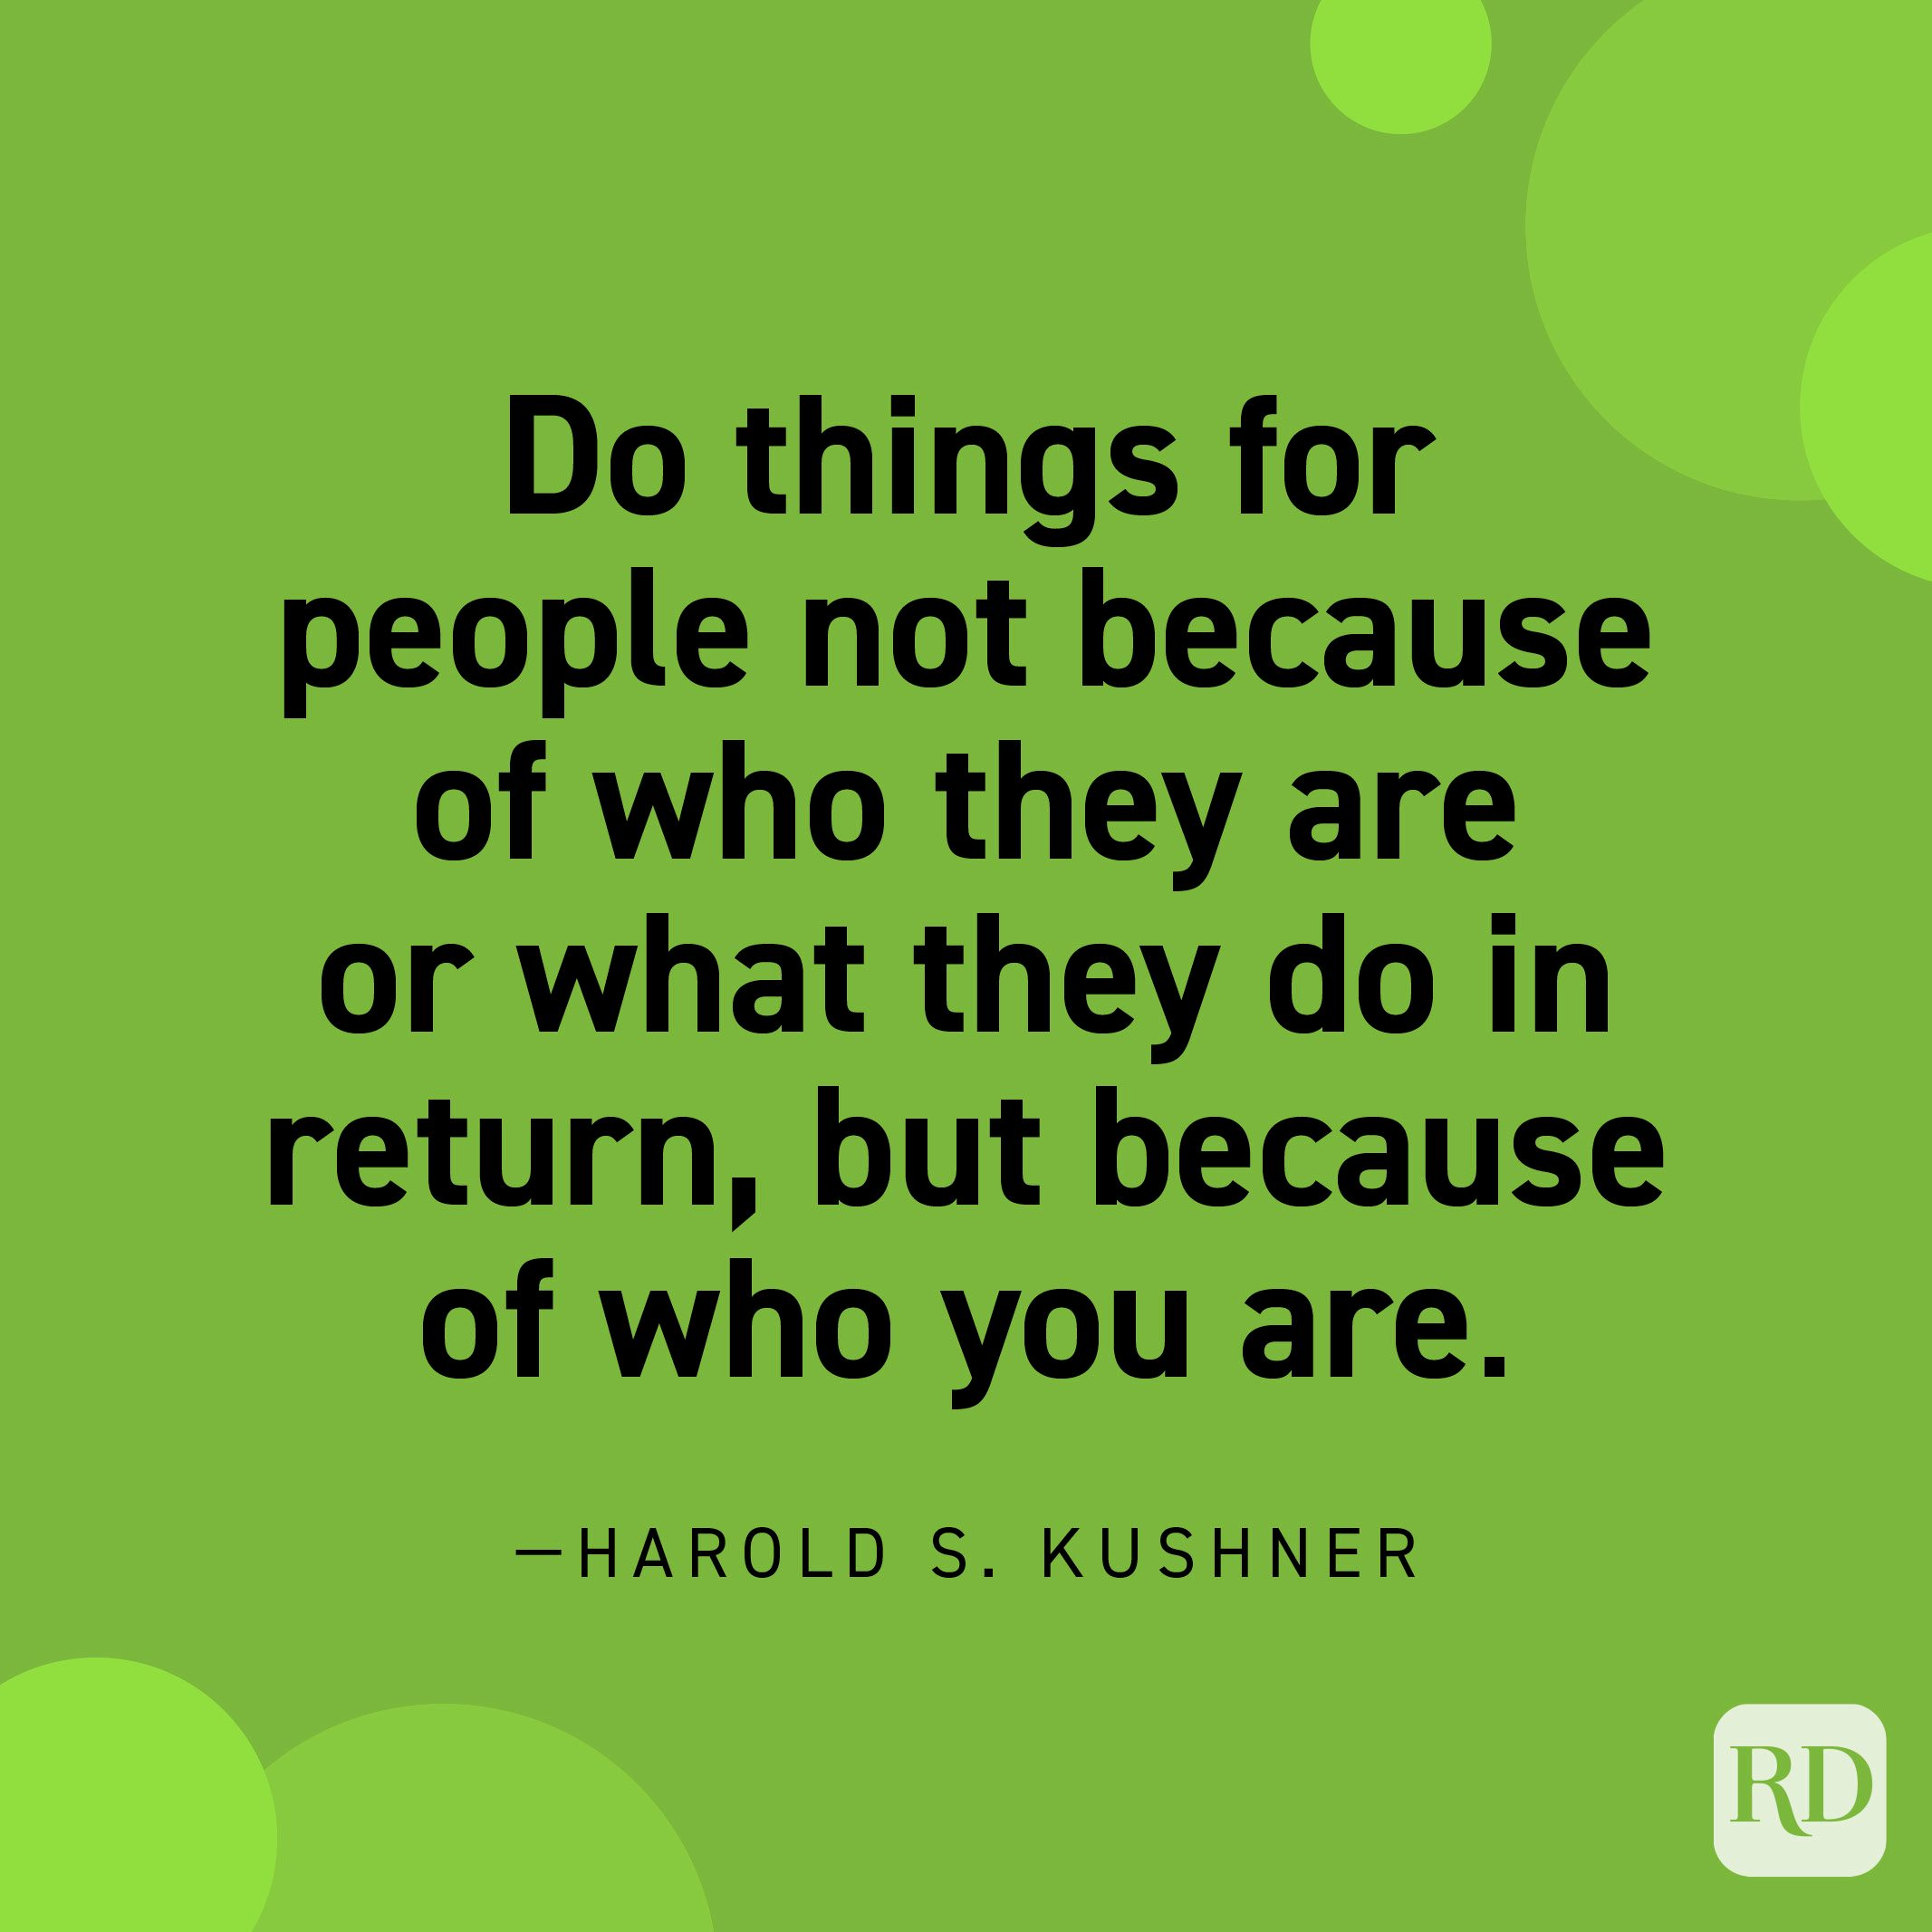 """""""Do things for people not because of who they are or what they do in return, but because of who you are."""" —Harold S. Kushner."""